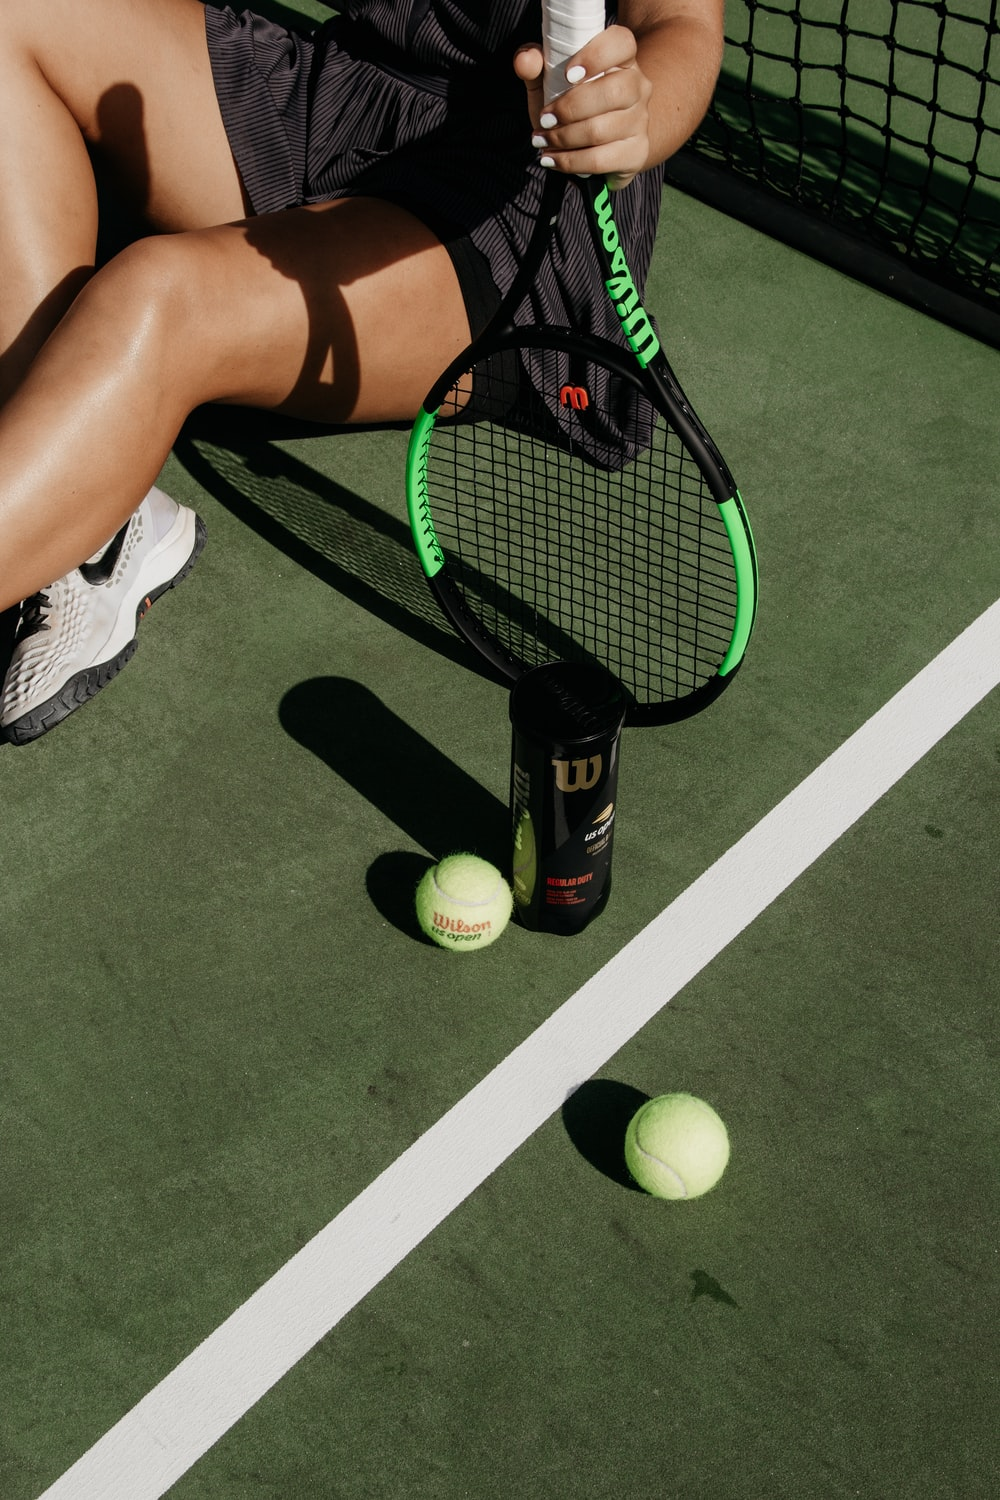 woman sitting while holding tennis racket beside balls